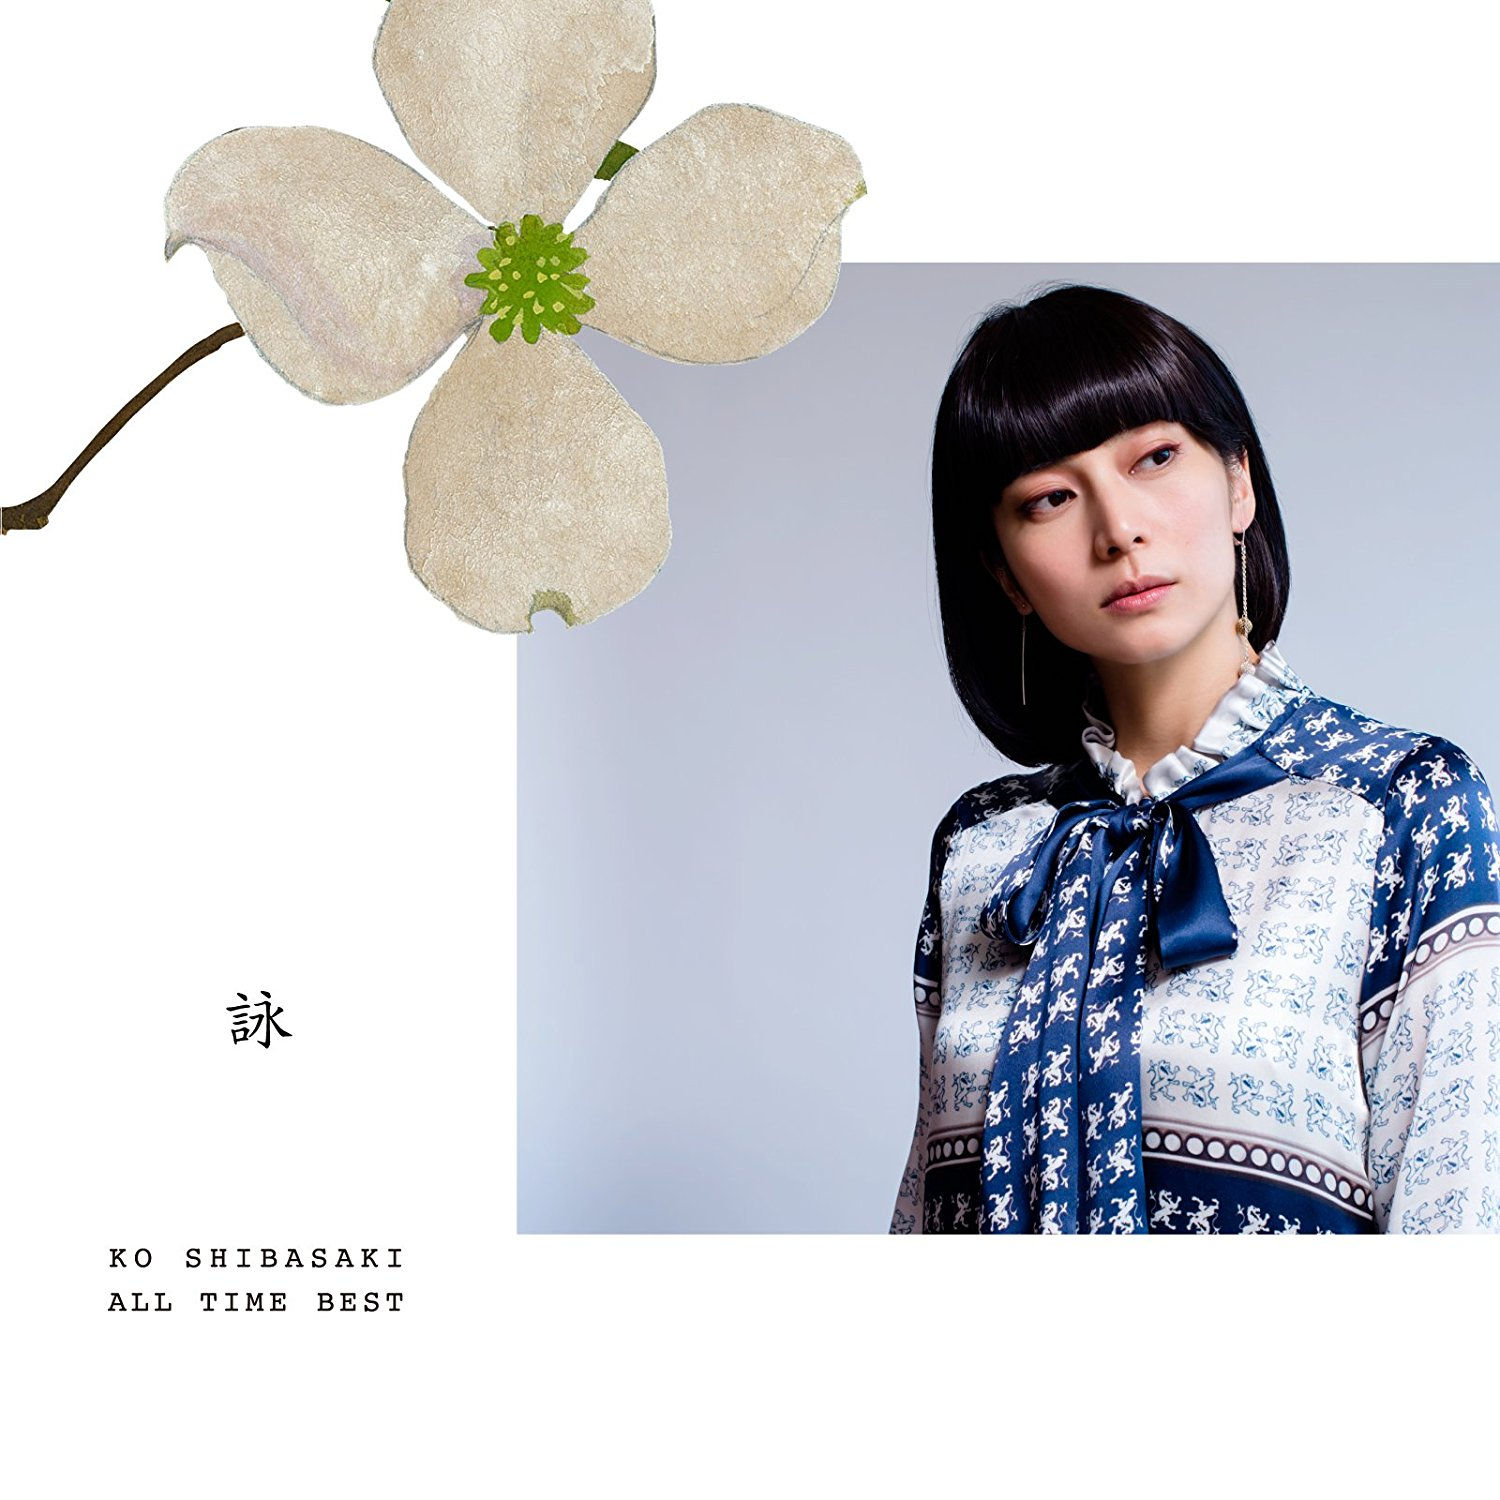 20171229.1319.1 Kou Shibasaki - All Time Best Ei (FLAC) cover.jpg